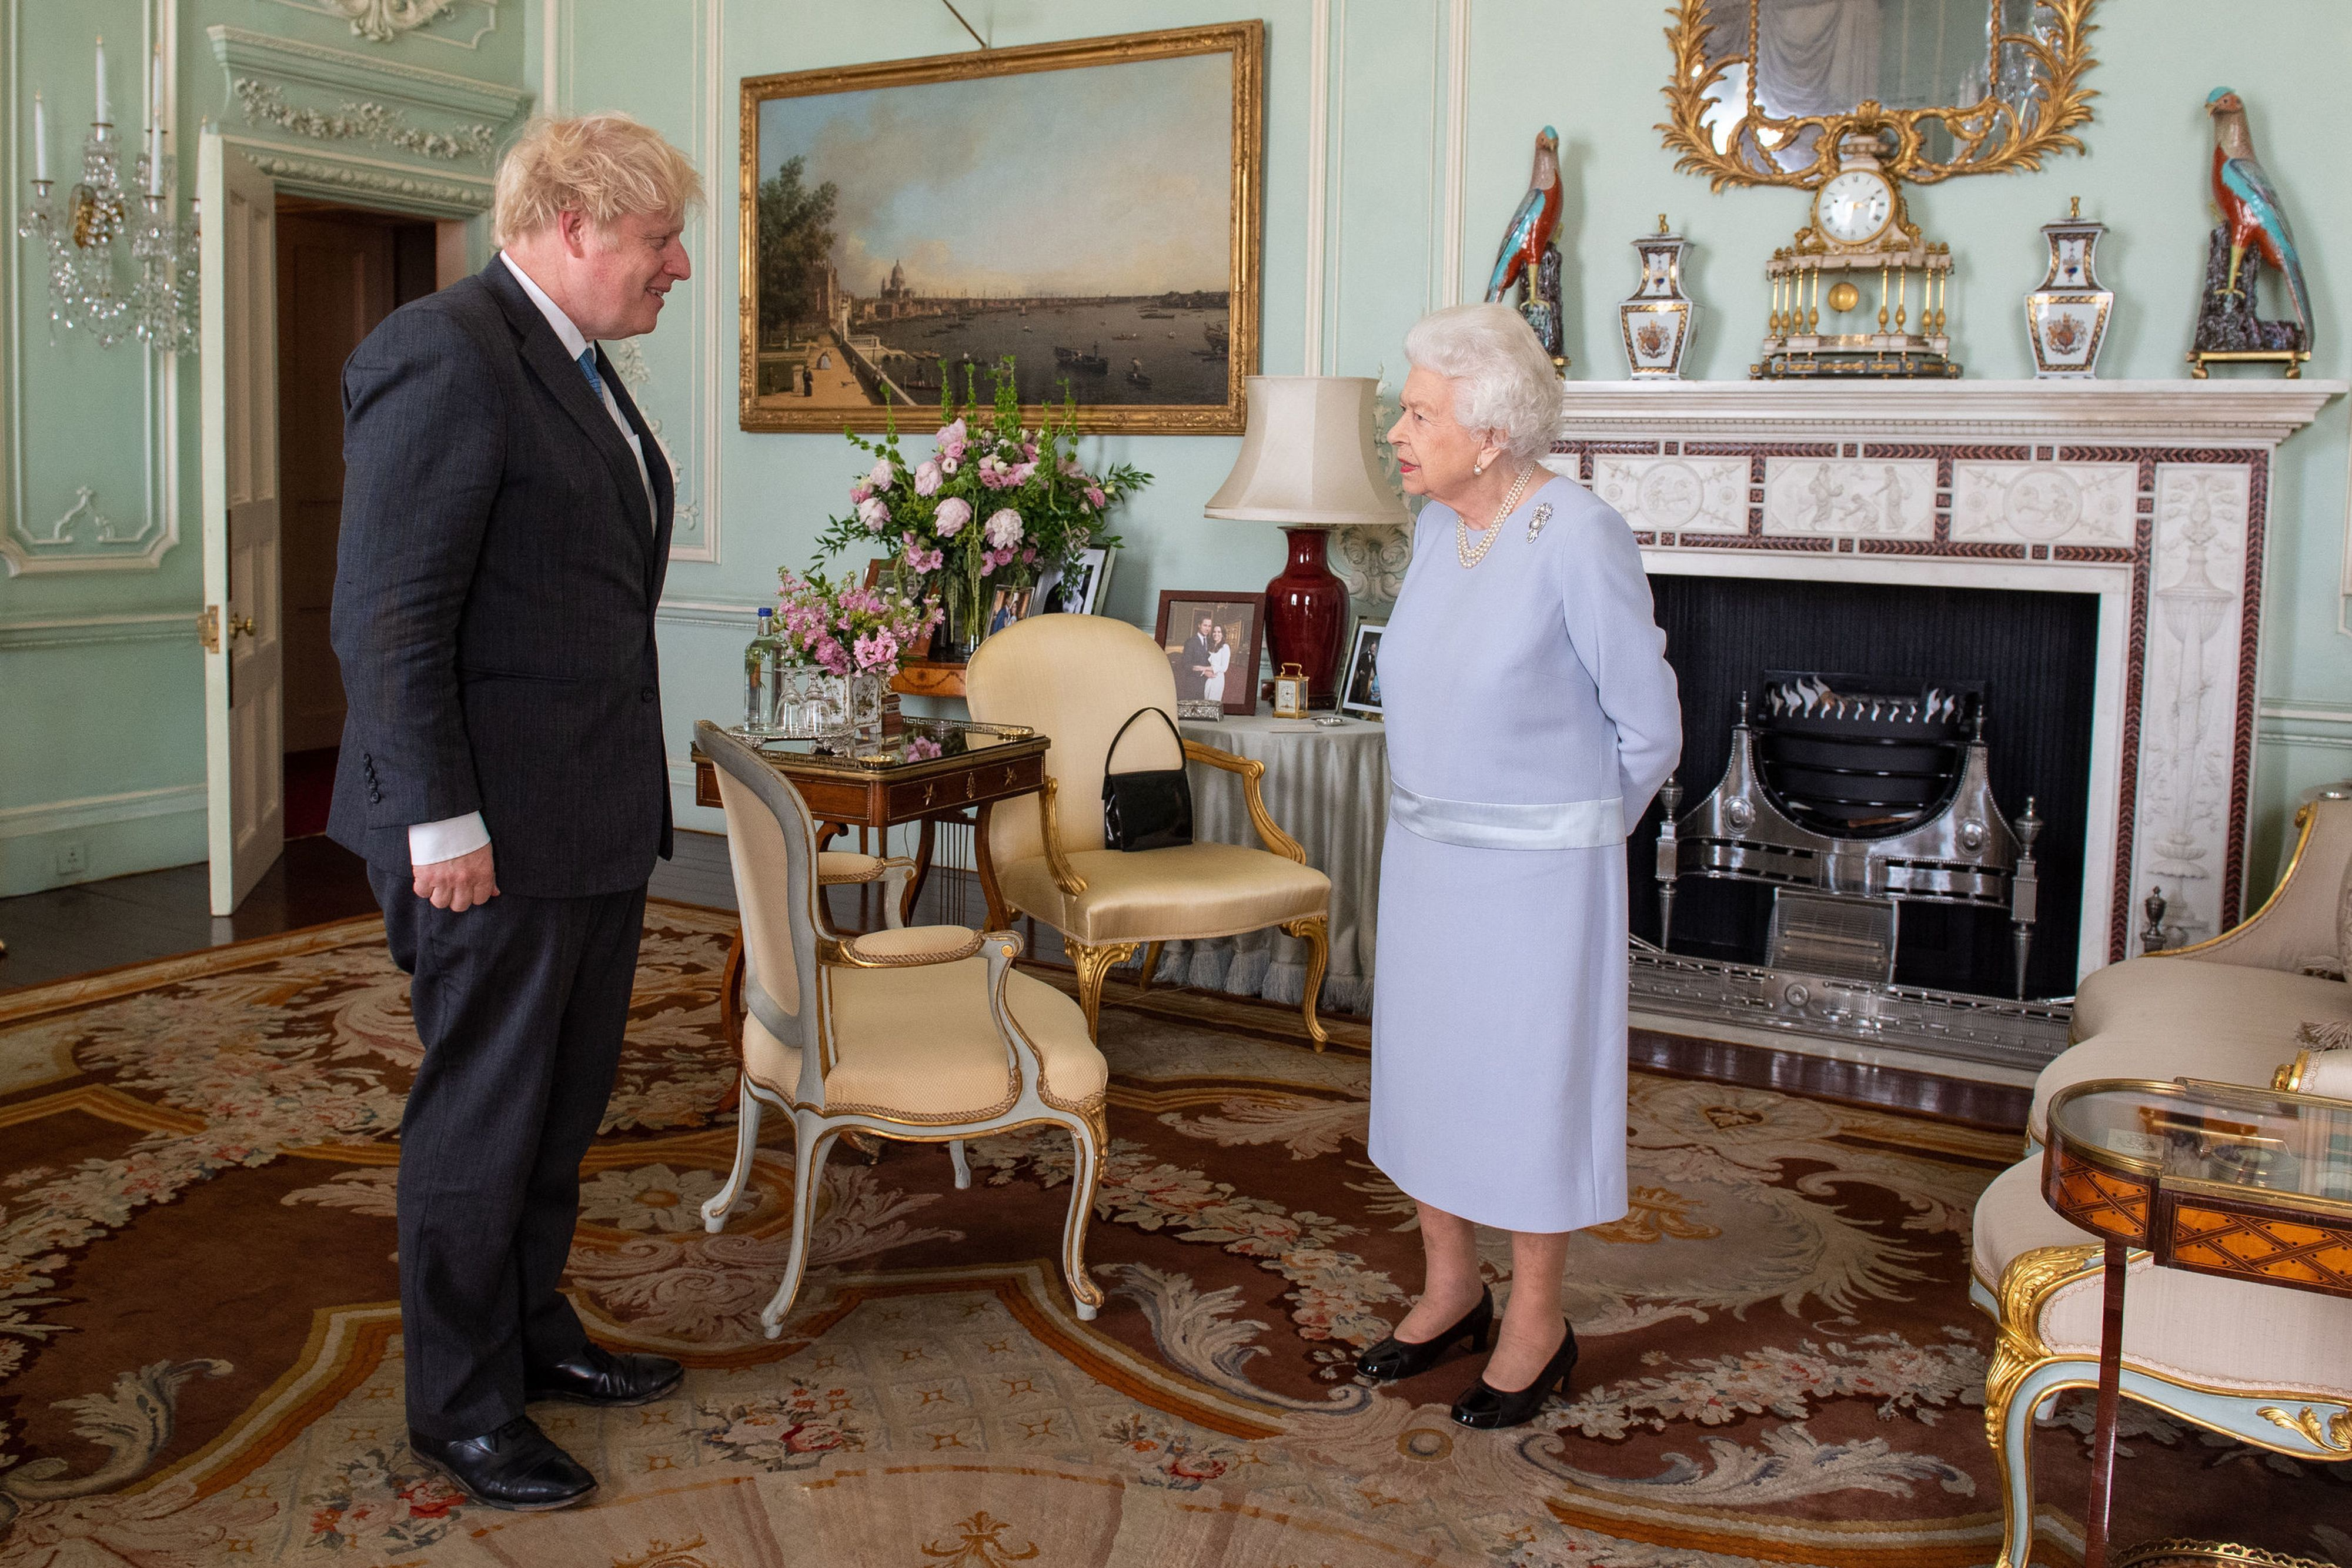 The Queen Has a Sweet Photo of Prince Harry and Meghan Markle in Her Office